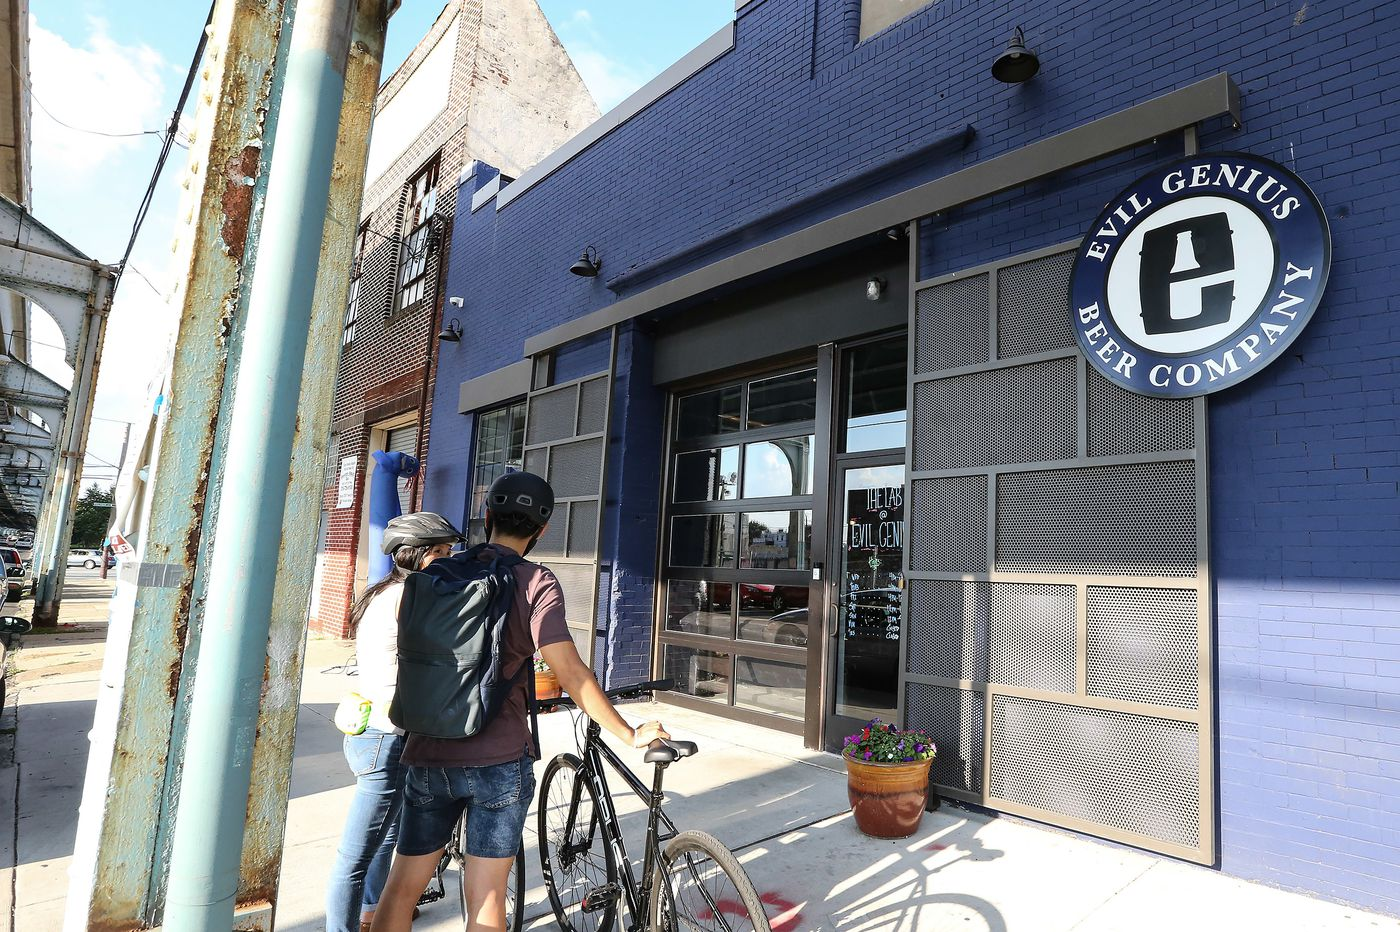 Evil Genius Beer Co. opens beer garden for the summer season, pays tribute to the Sixers' playoff run